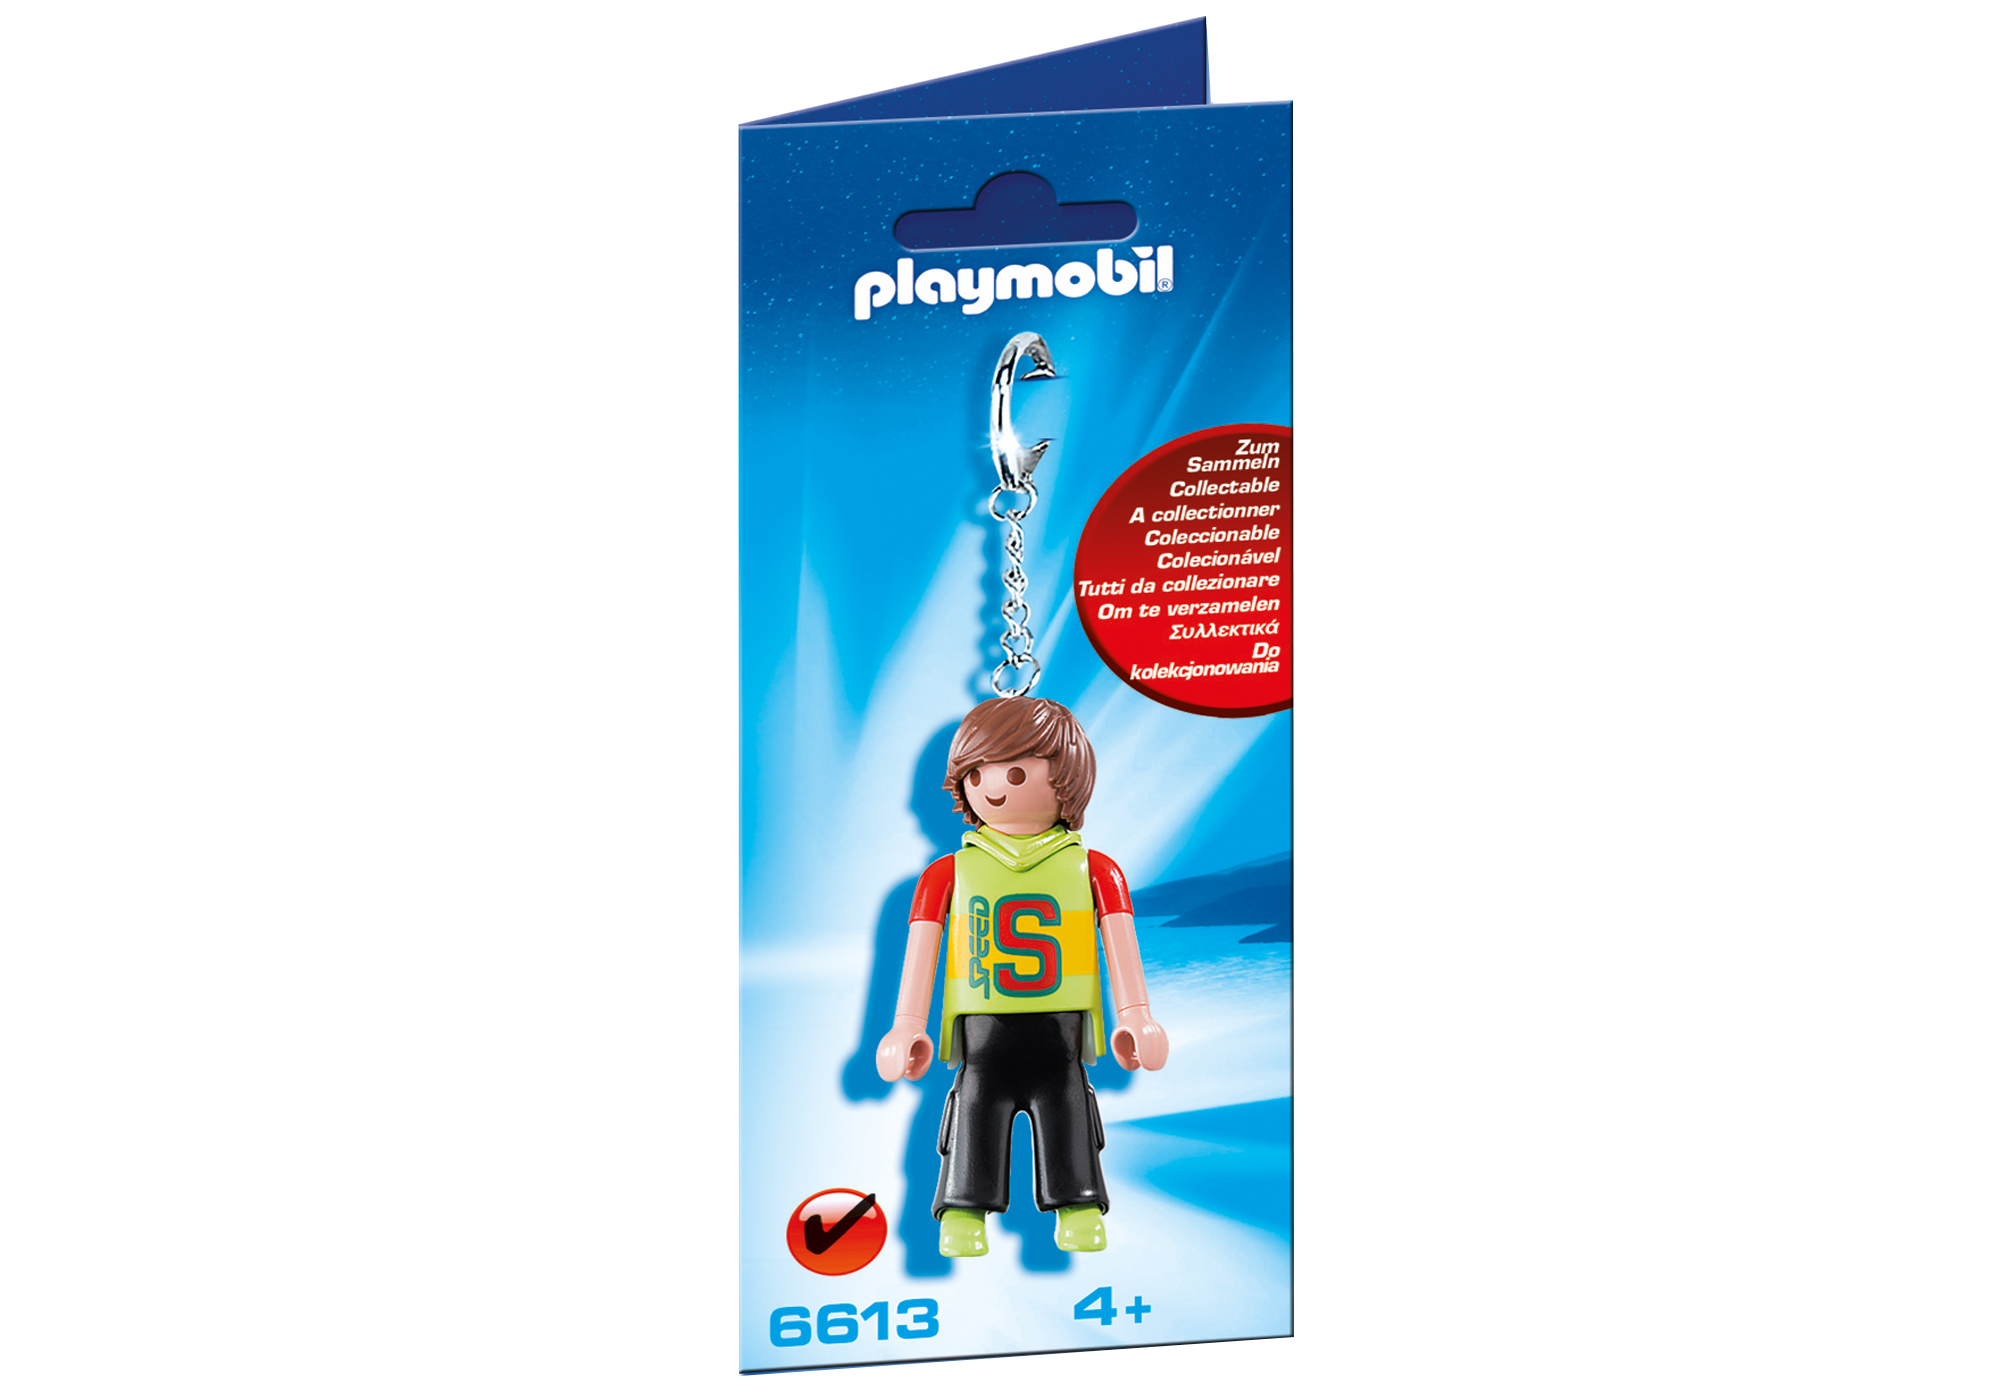 http://media.playmobil.com/i/playmobil/6613_product_box_front